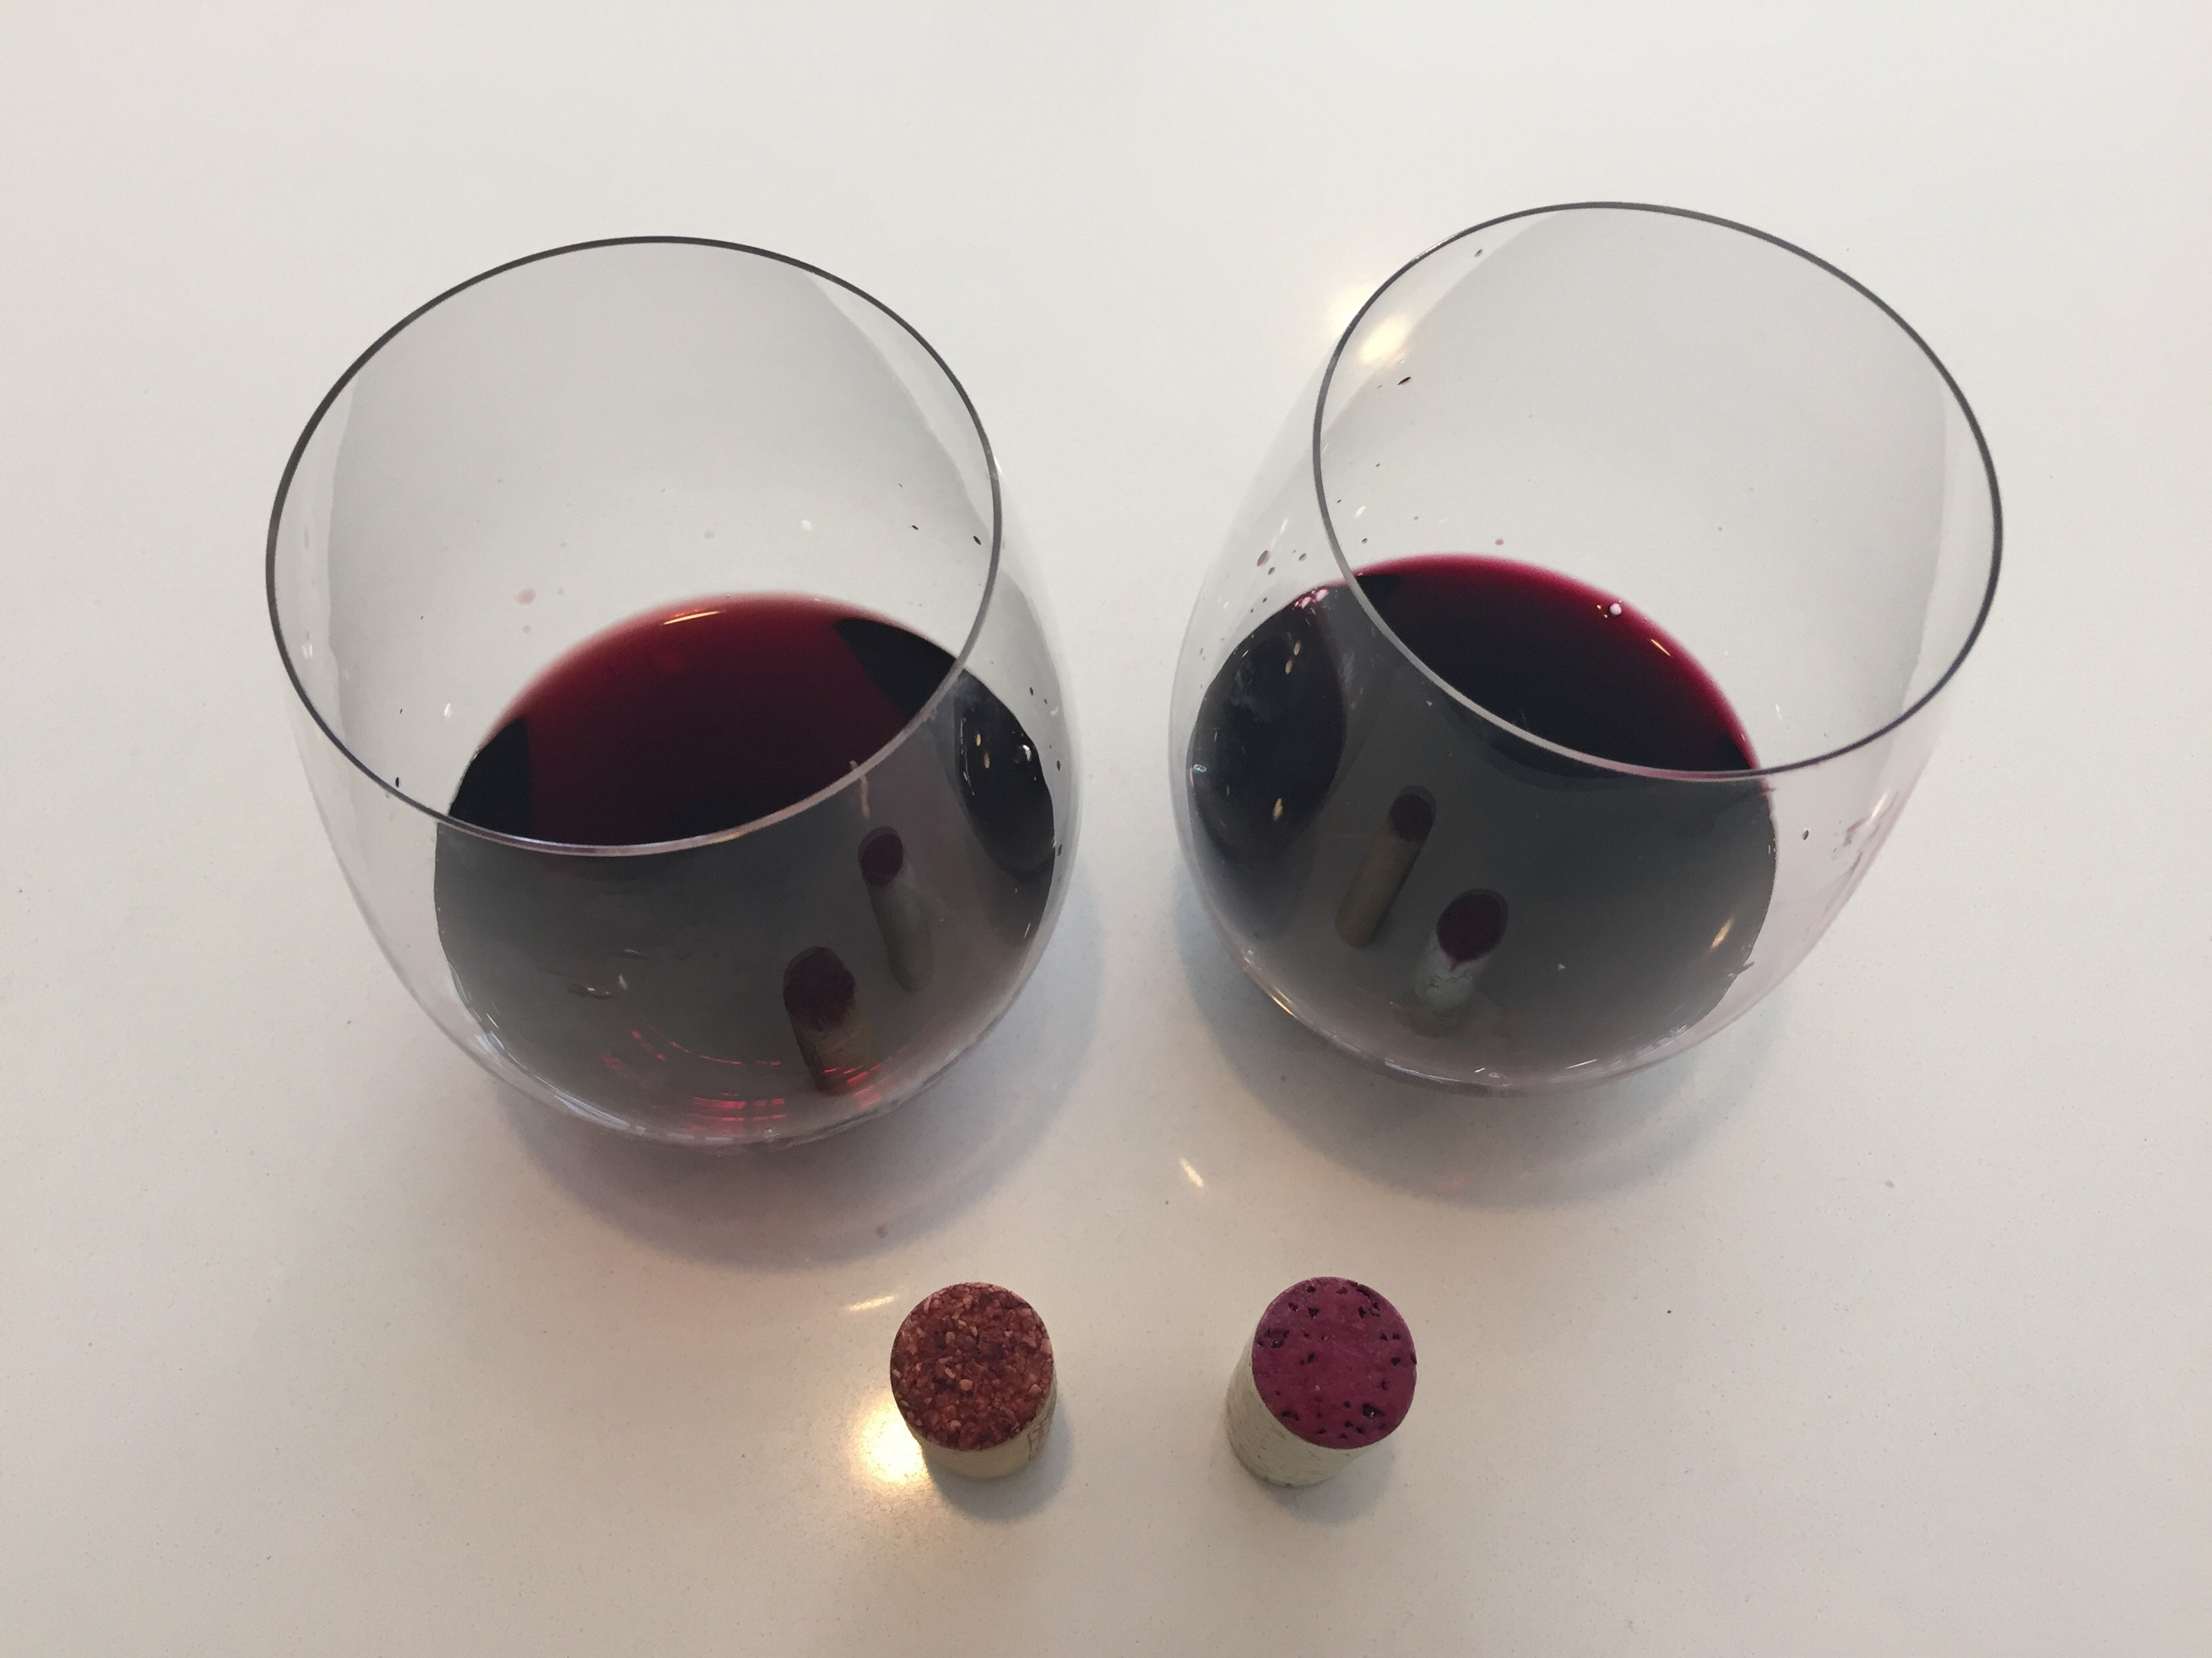 A glass of the brick red 2016 Kirkland Signature on the left, and a glass of the electric red/purple 2017 TJ's Reserve on the right.